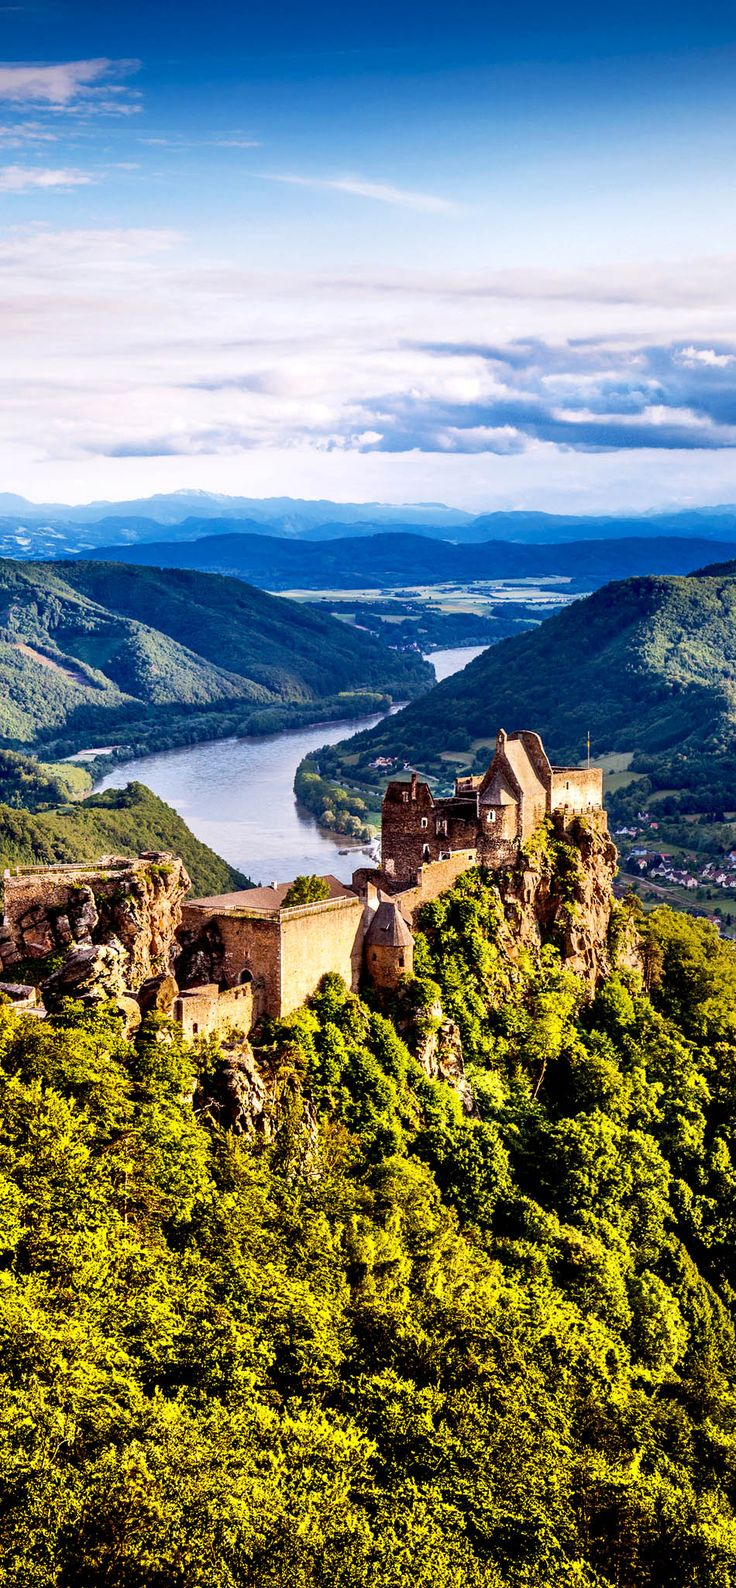 Scenic landscape with Burgruine Aggstein and the Danube river at sunset in Wachau Valley near Vienna, in Aggstein, Lower Austria (Niederösterreich), Austria | 30+ Truly Charming Places To See in Austria | #BurgruineAggstein #castle #ruin #Danube #Wachua #loweraustria #Niederösterreich #Austria #Aggstein